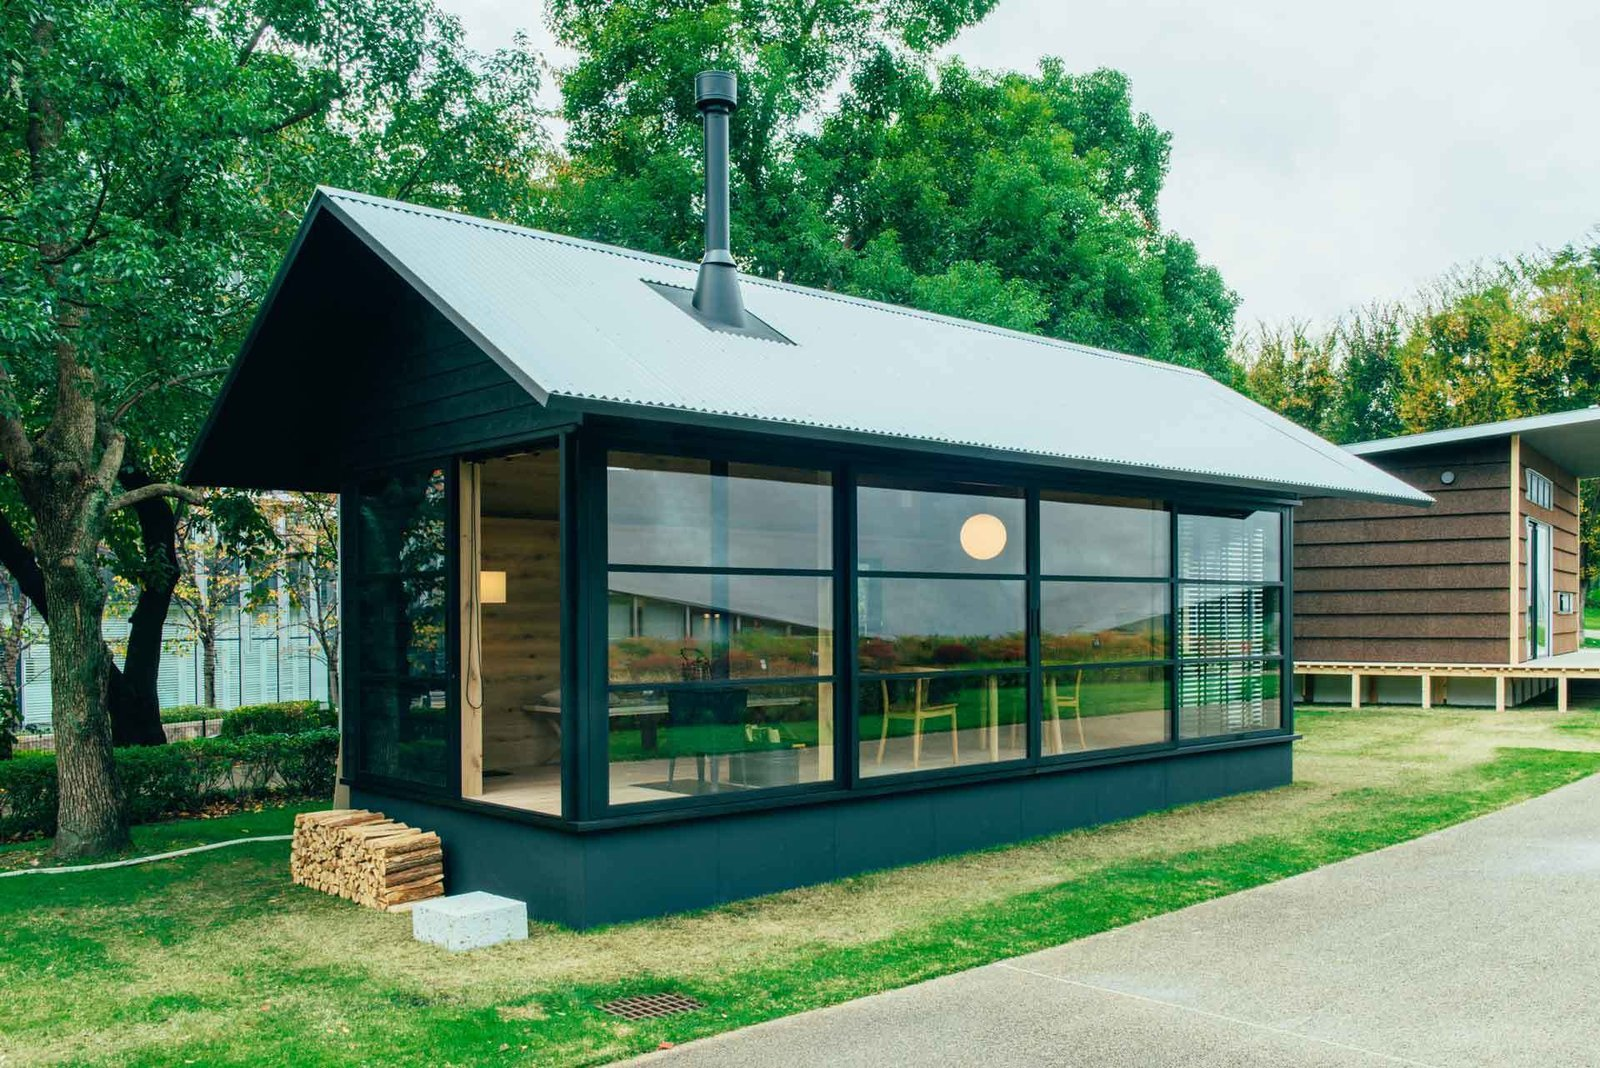 Muji's wooden pre-fab hut, made primarily of timber.